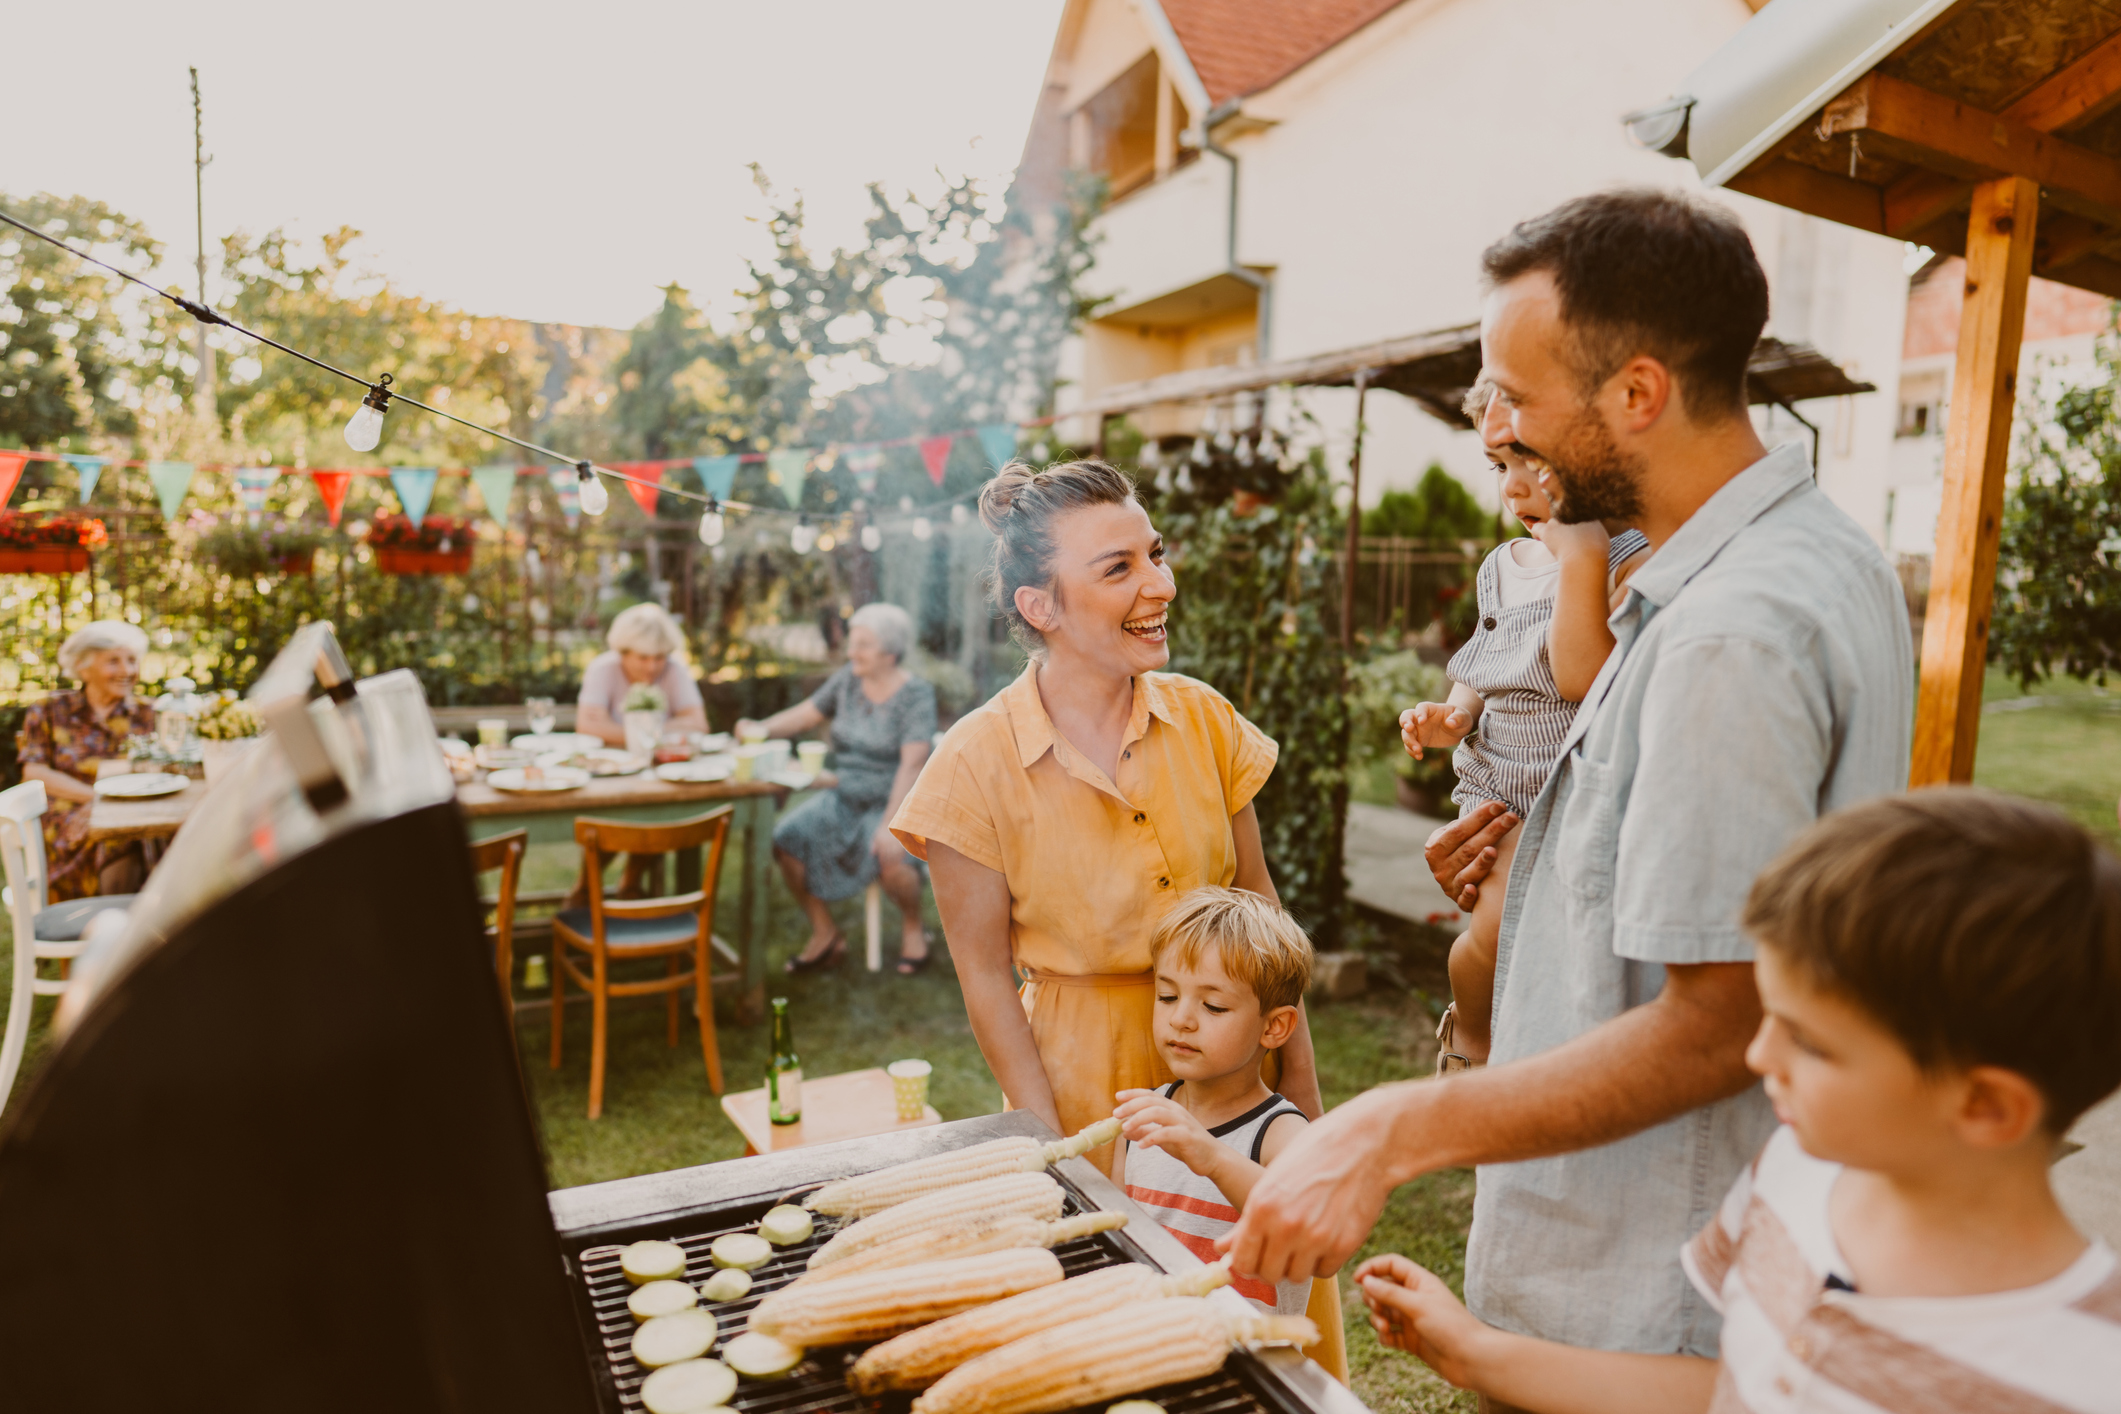 Prep for Your Backyard Party This Summer at Conn's Home Plus